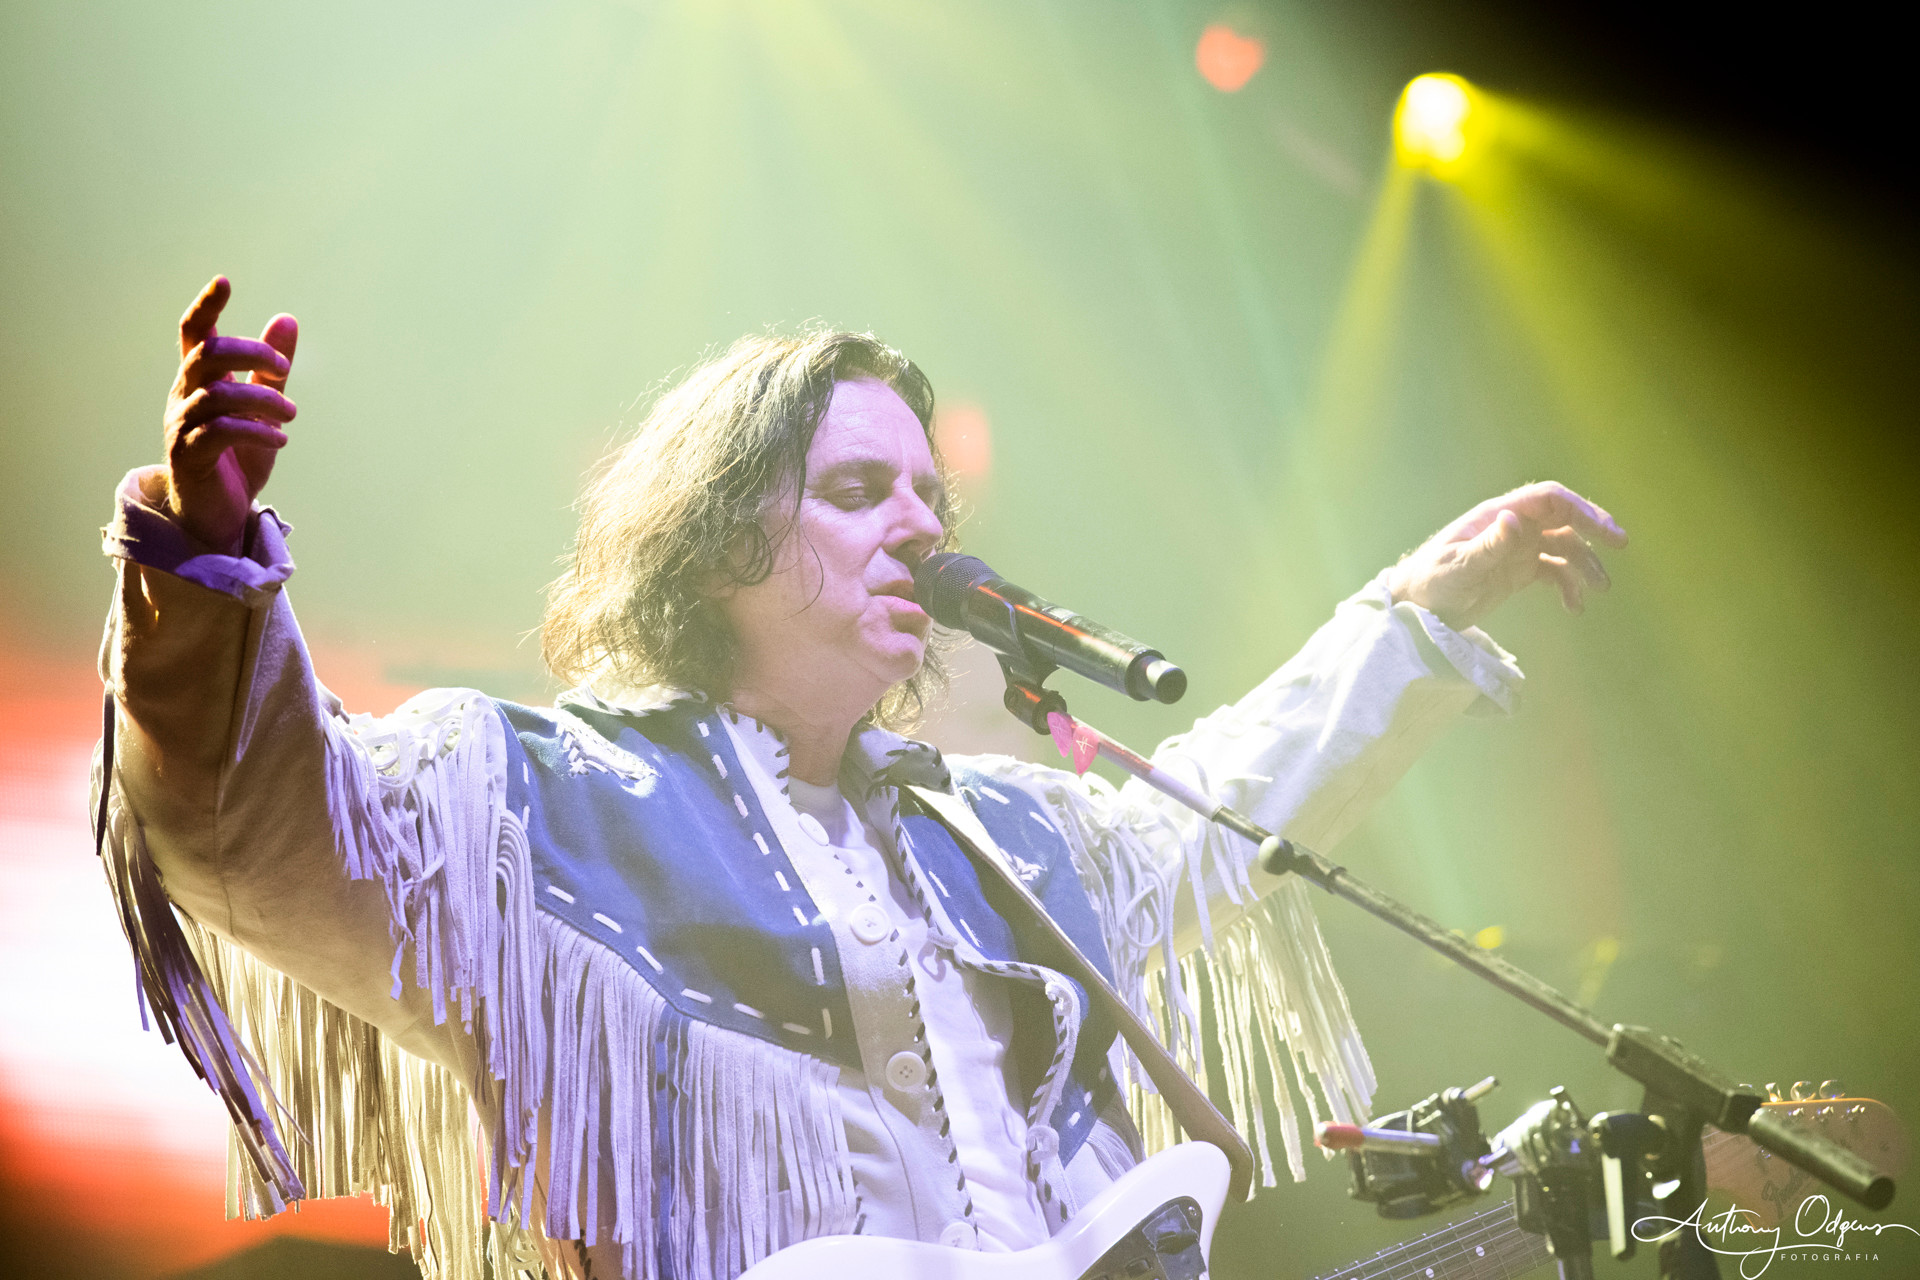 2019-03-24-Marillion Weekend 2019-60.jpg